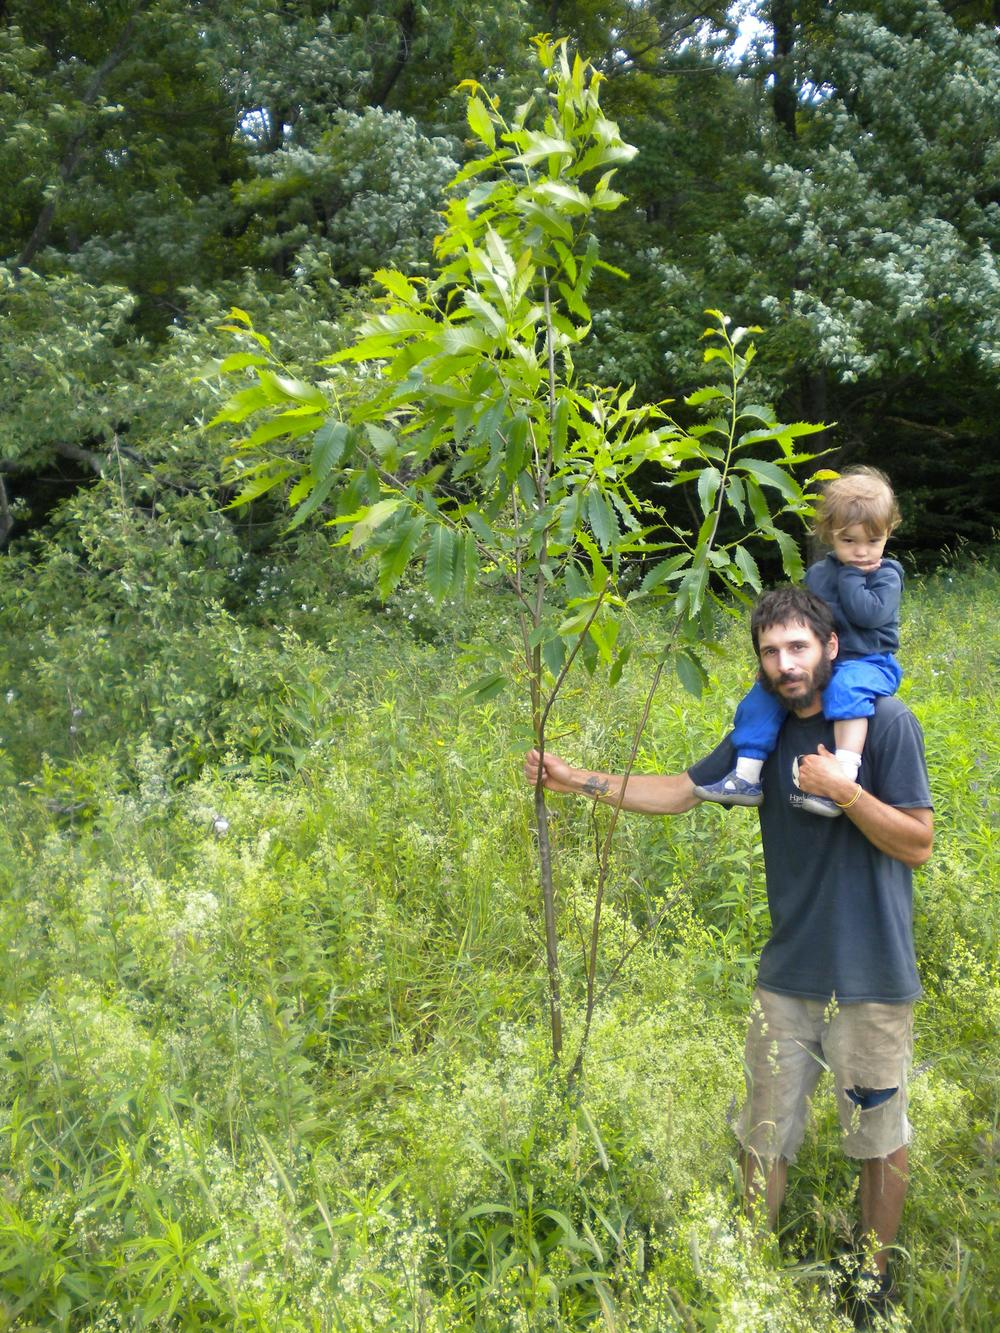 That's my son Cyrus and me, next to a 4 year old American hybrid chestnut.